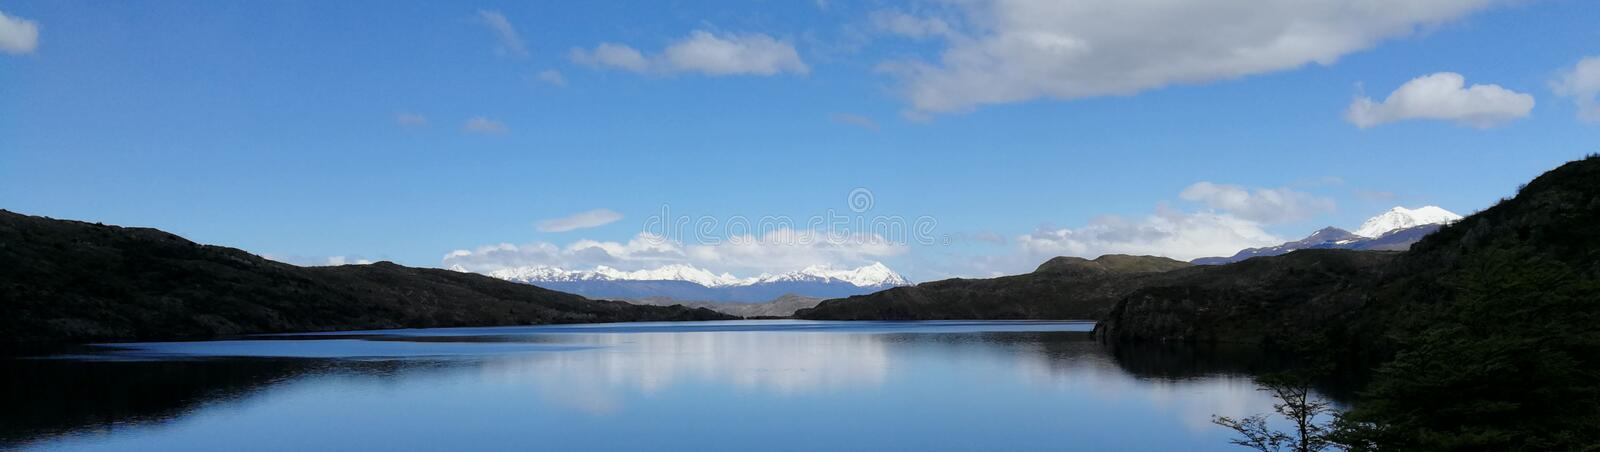 Chile Patagonia National Park Torres Del Paine Over The Pehoe Lake W circuit trekking stock photos